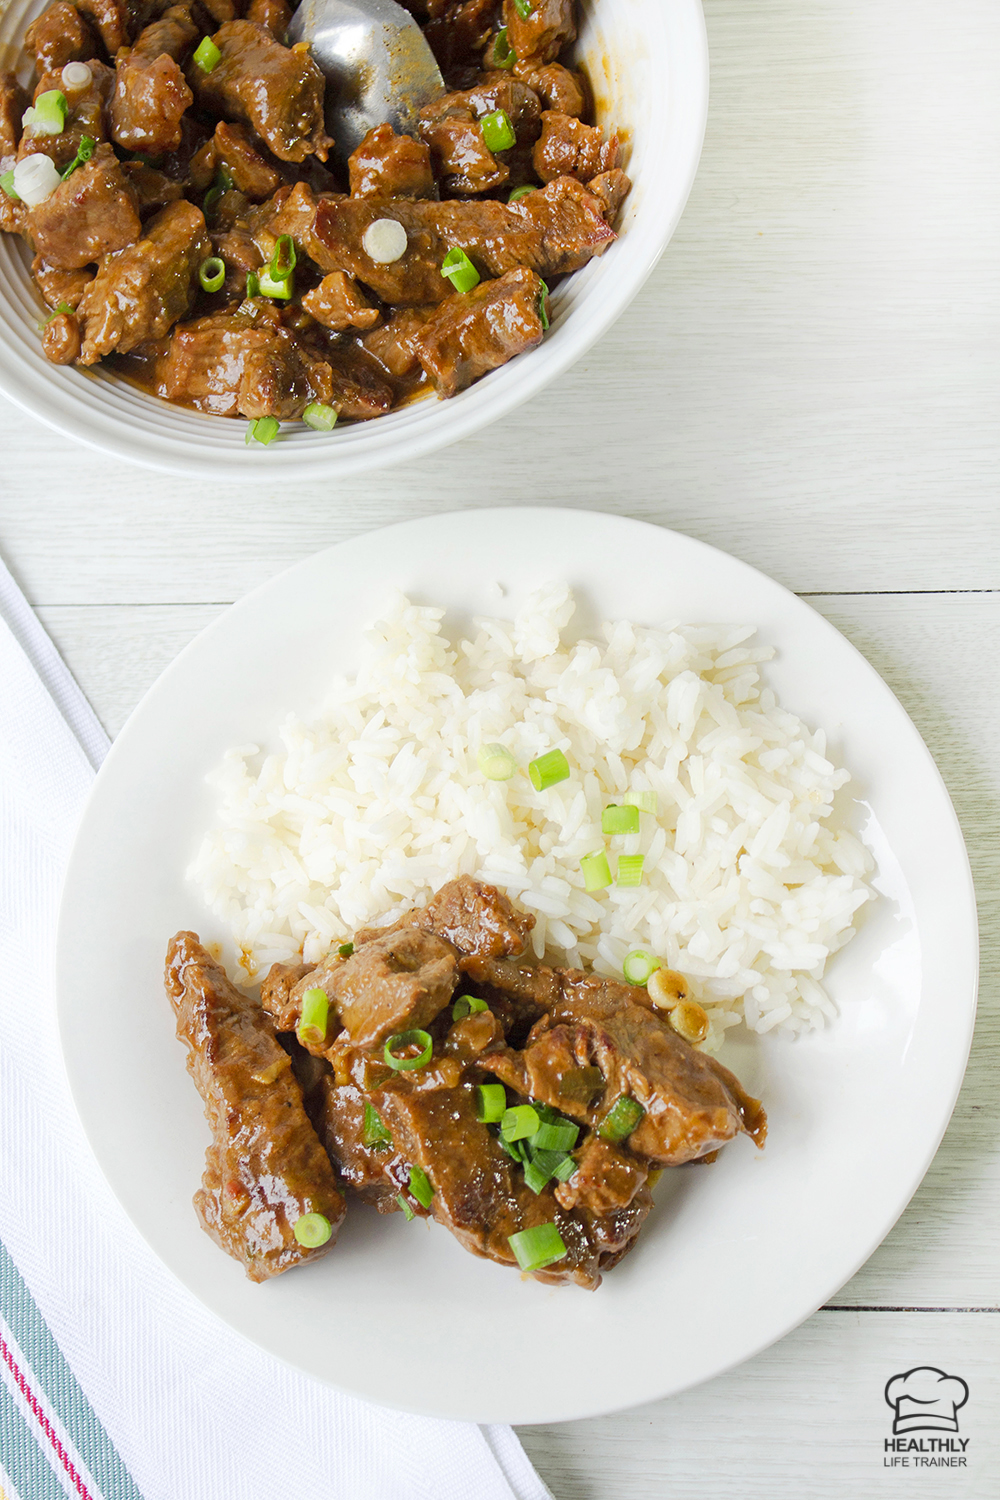 chilli beef in a plate with rice